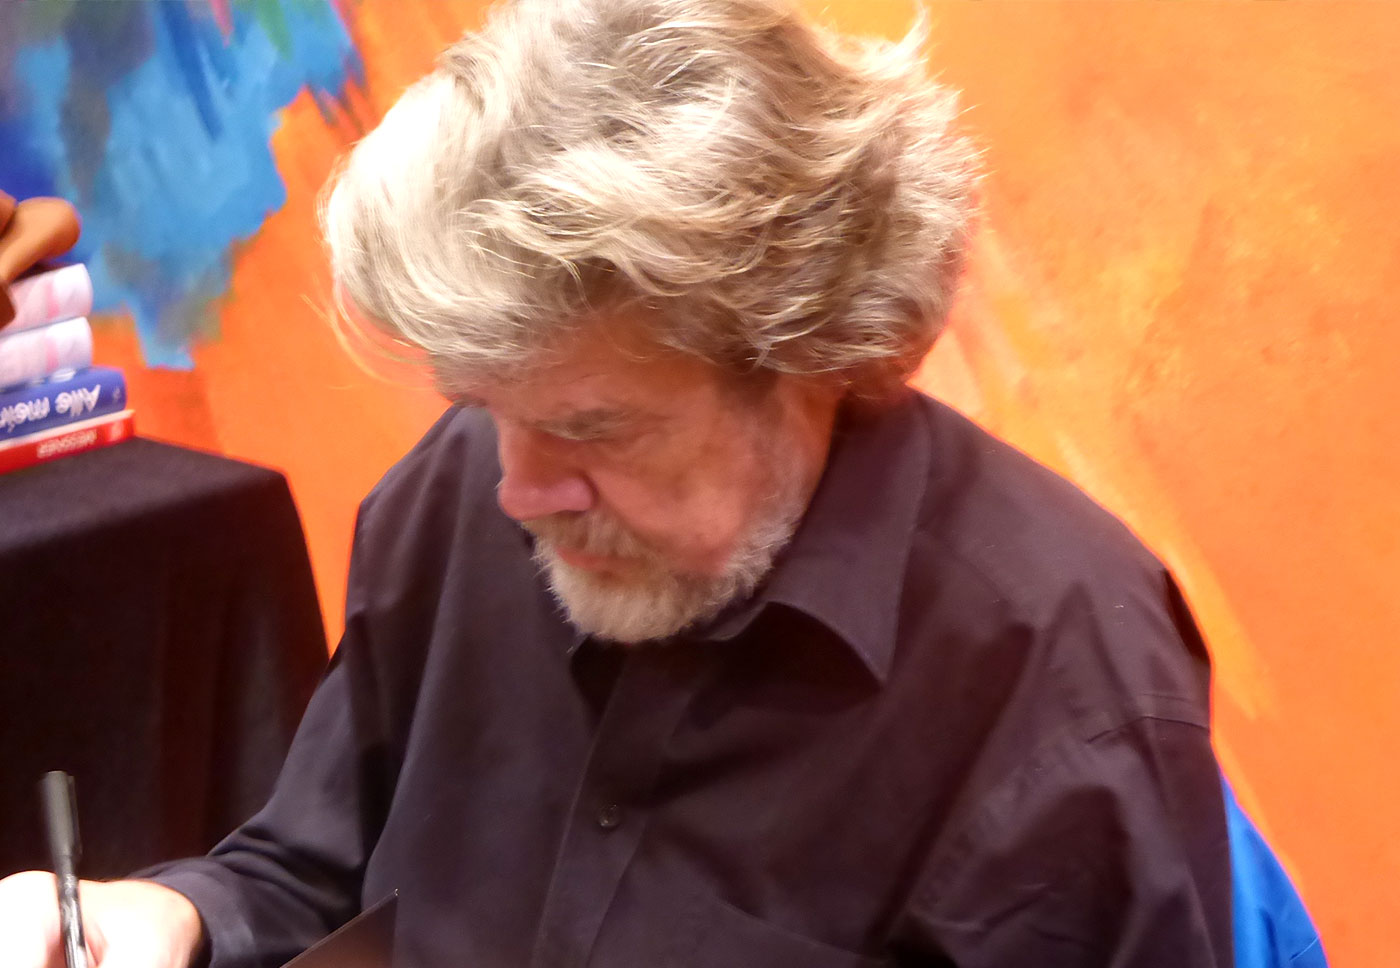 Reinhold Messner in Pforzheim